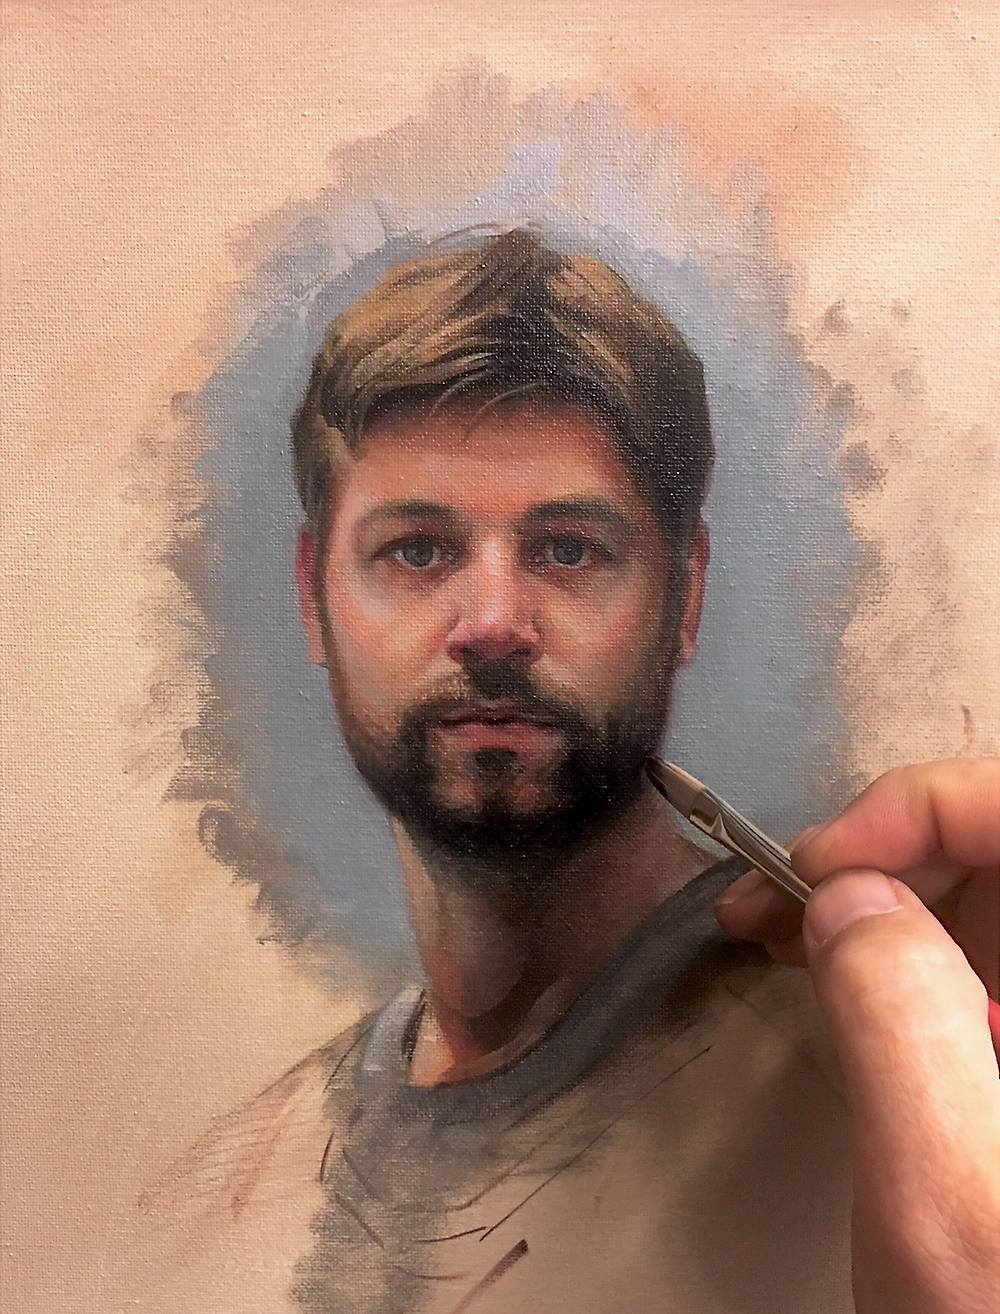 Self-portrait oil painting. The portrait itself is about 5 inches in size.